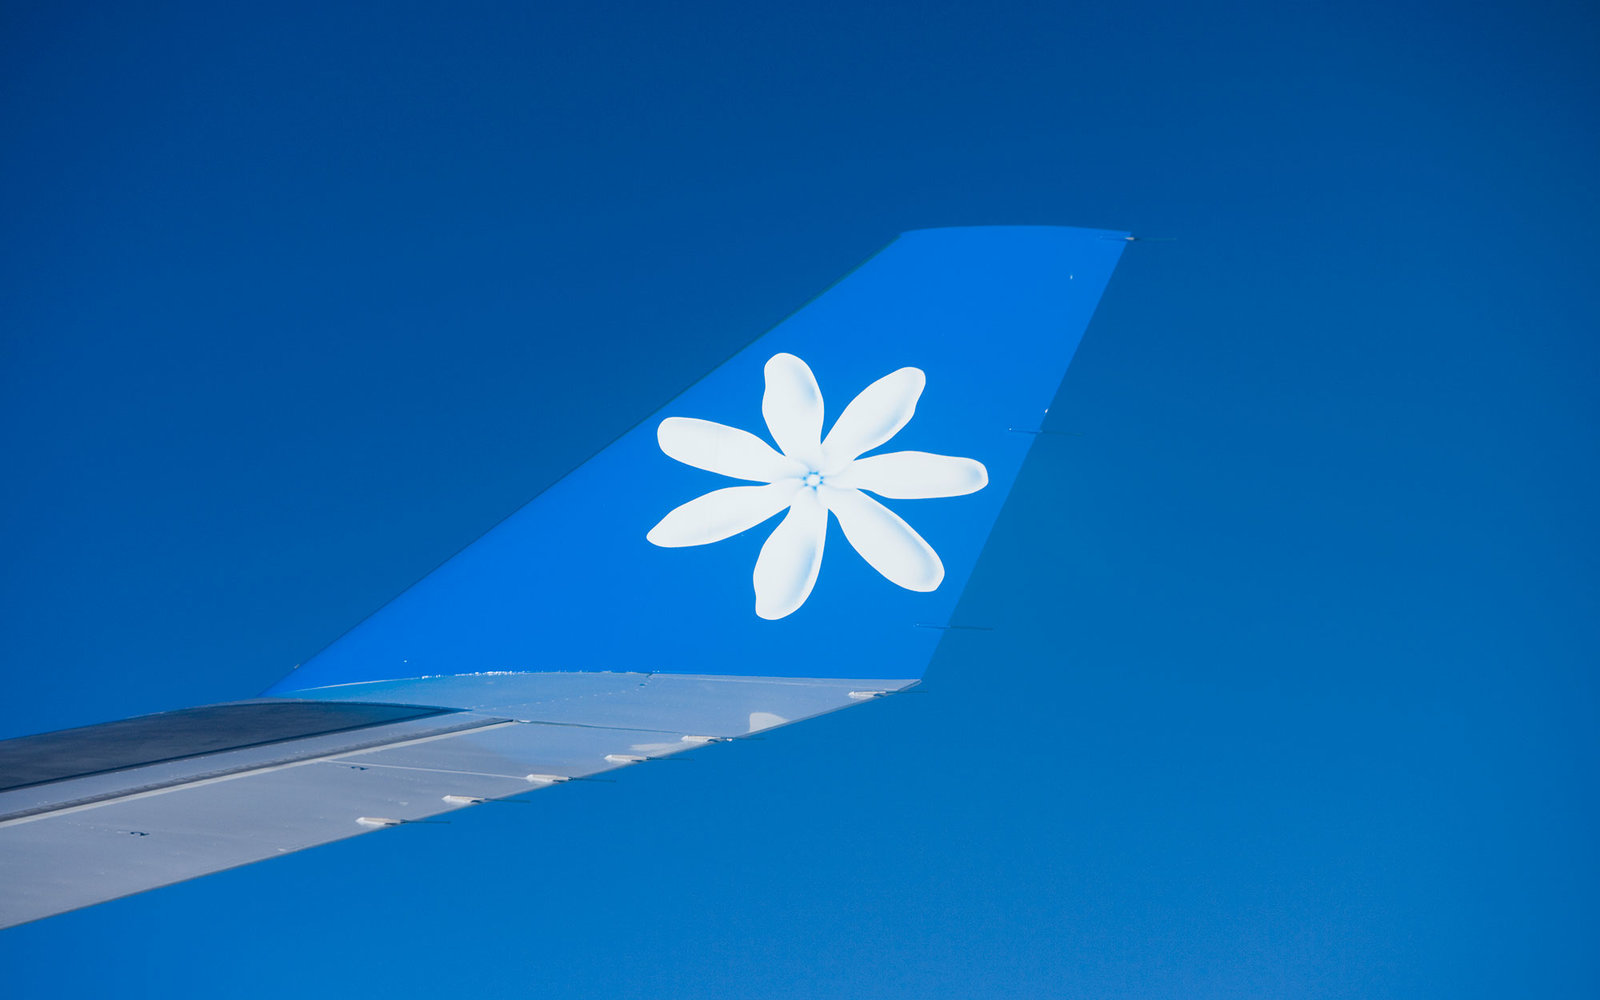 Air Tahiti Nui Airbus A340 wing with Tiare logo